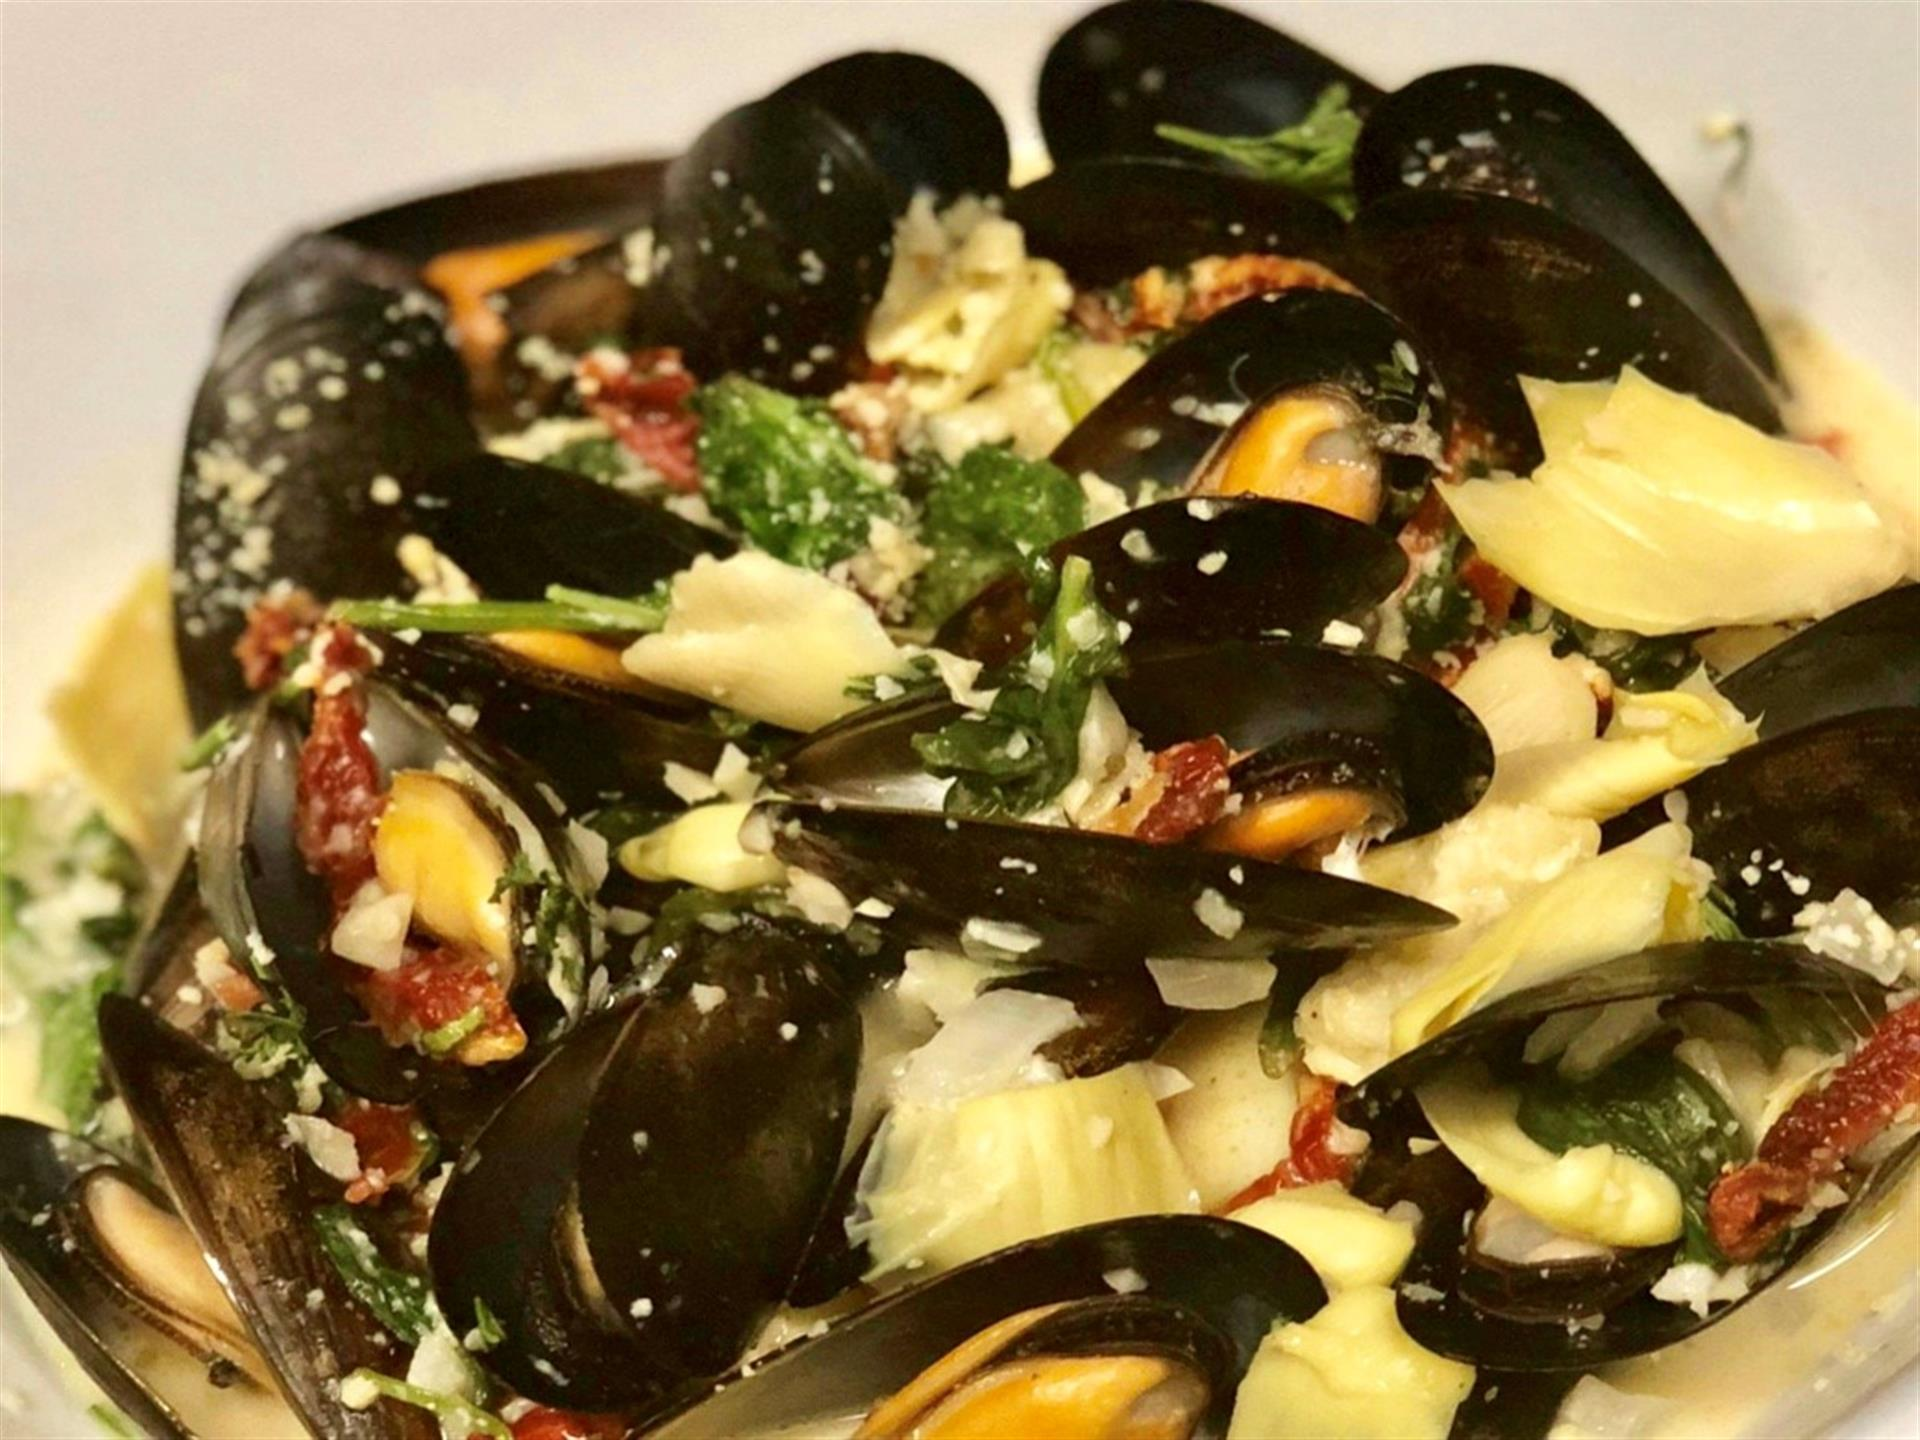 Mussels Sautéed In A Lemon Herb Wine Sauce With Artichoke Hearts, And Sun-Dried Tomatoes